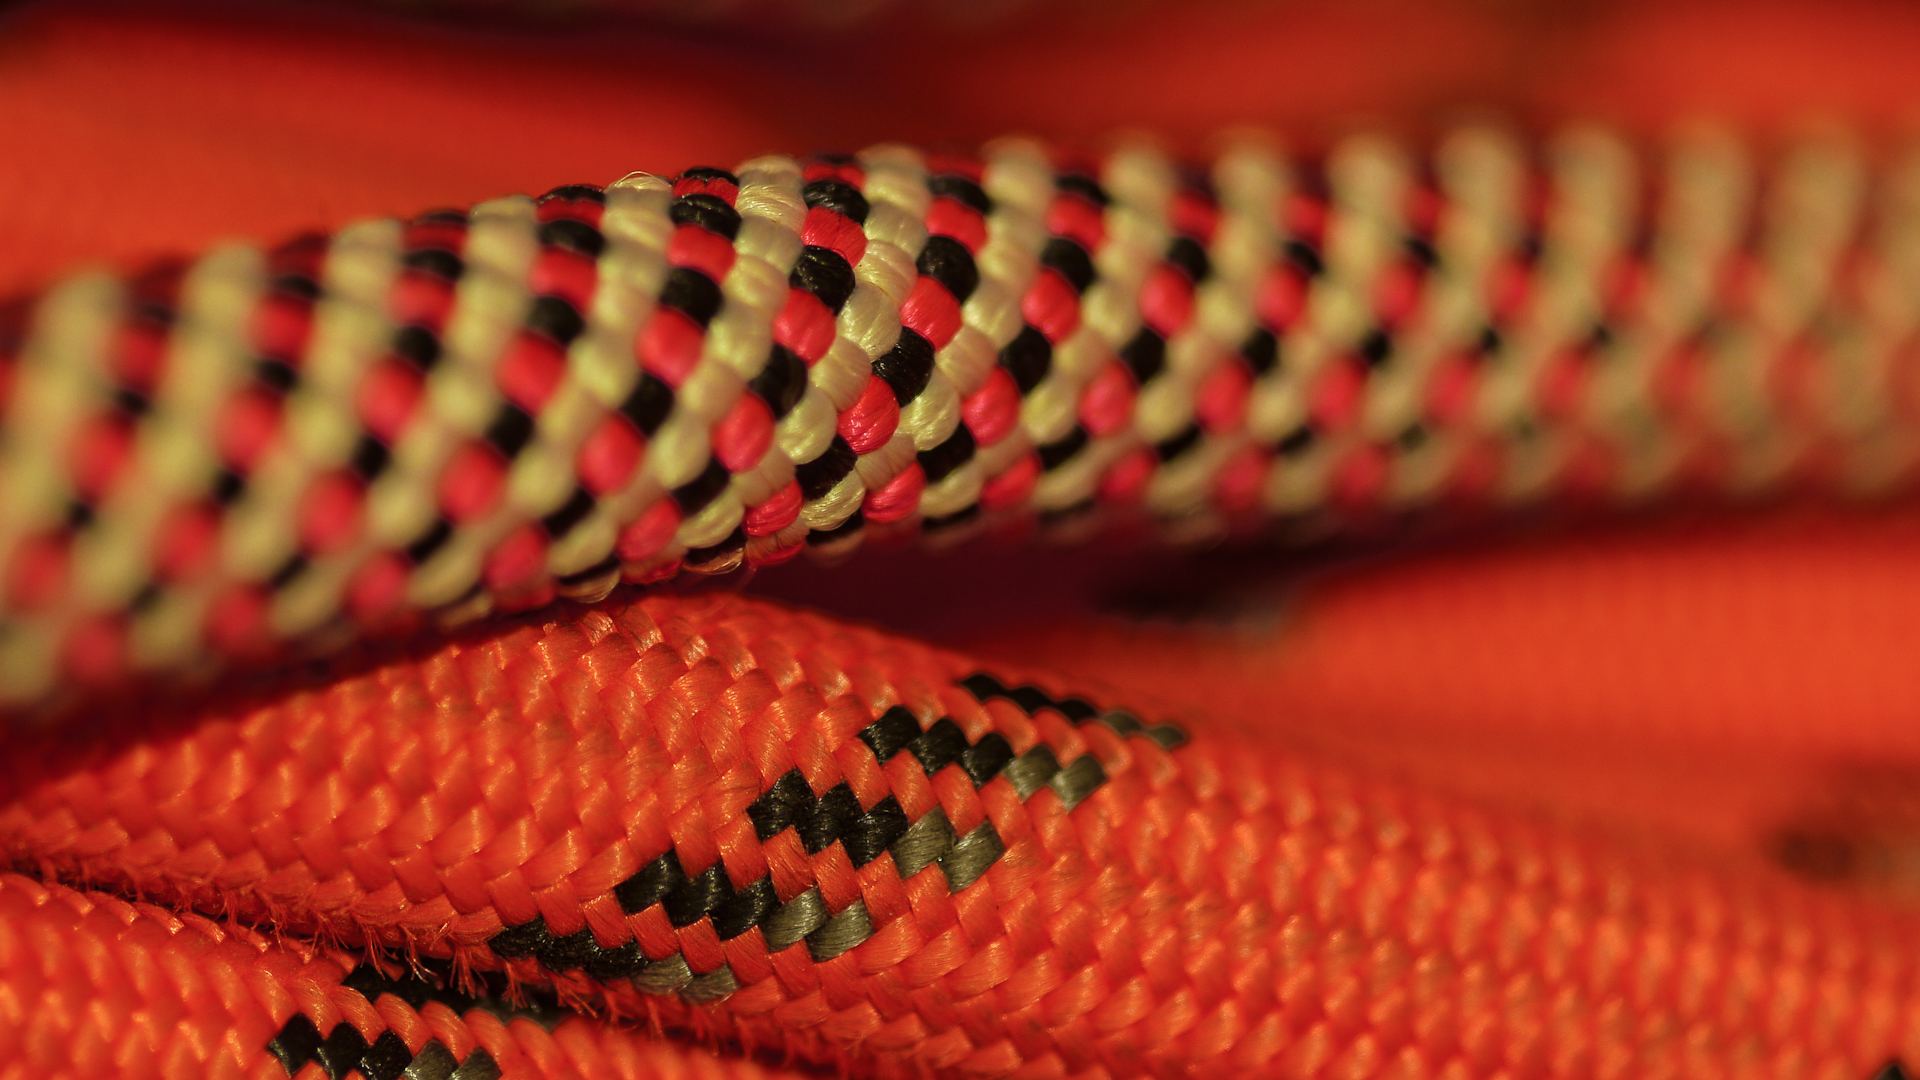 January 9th - Wanted to take a photo of rope up close. I always carry some with my when I go hiking, because I have a habit of getting into shenanagins.